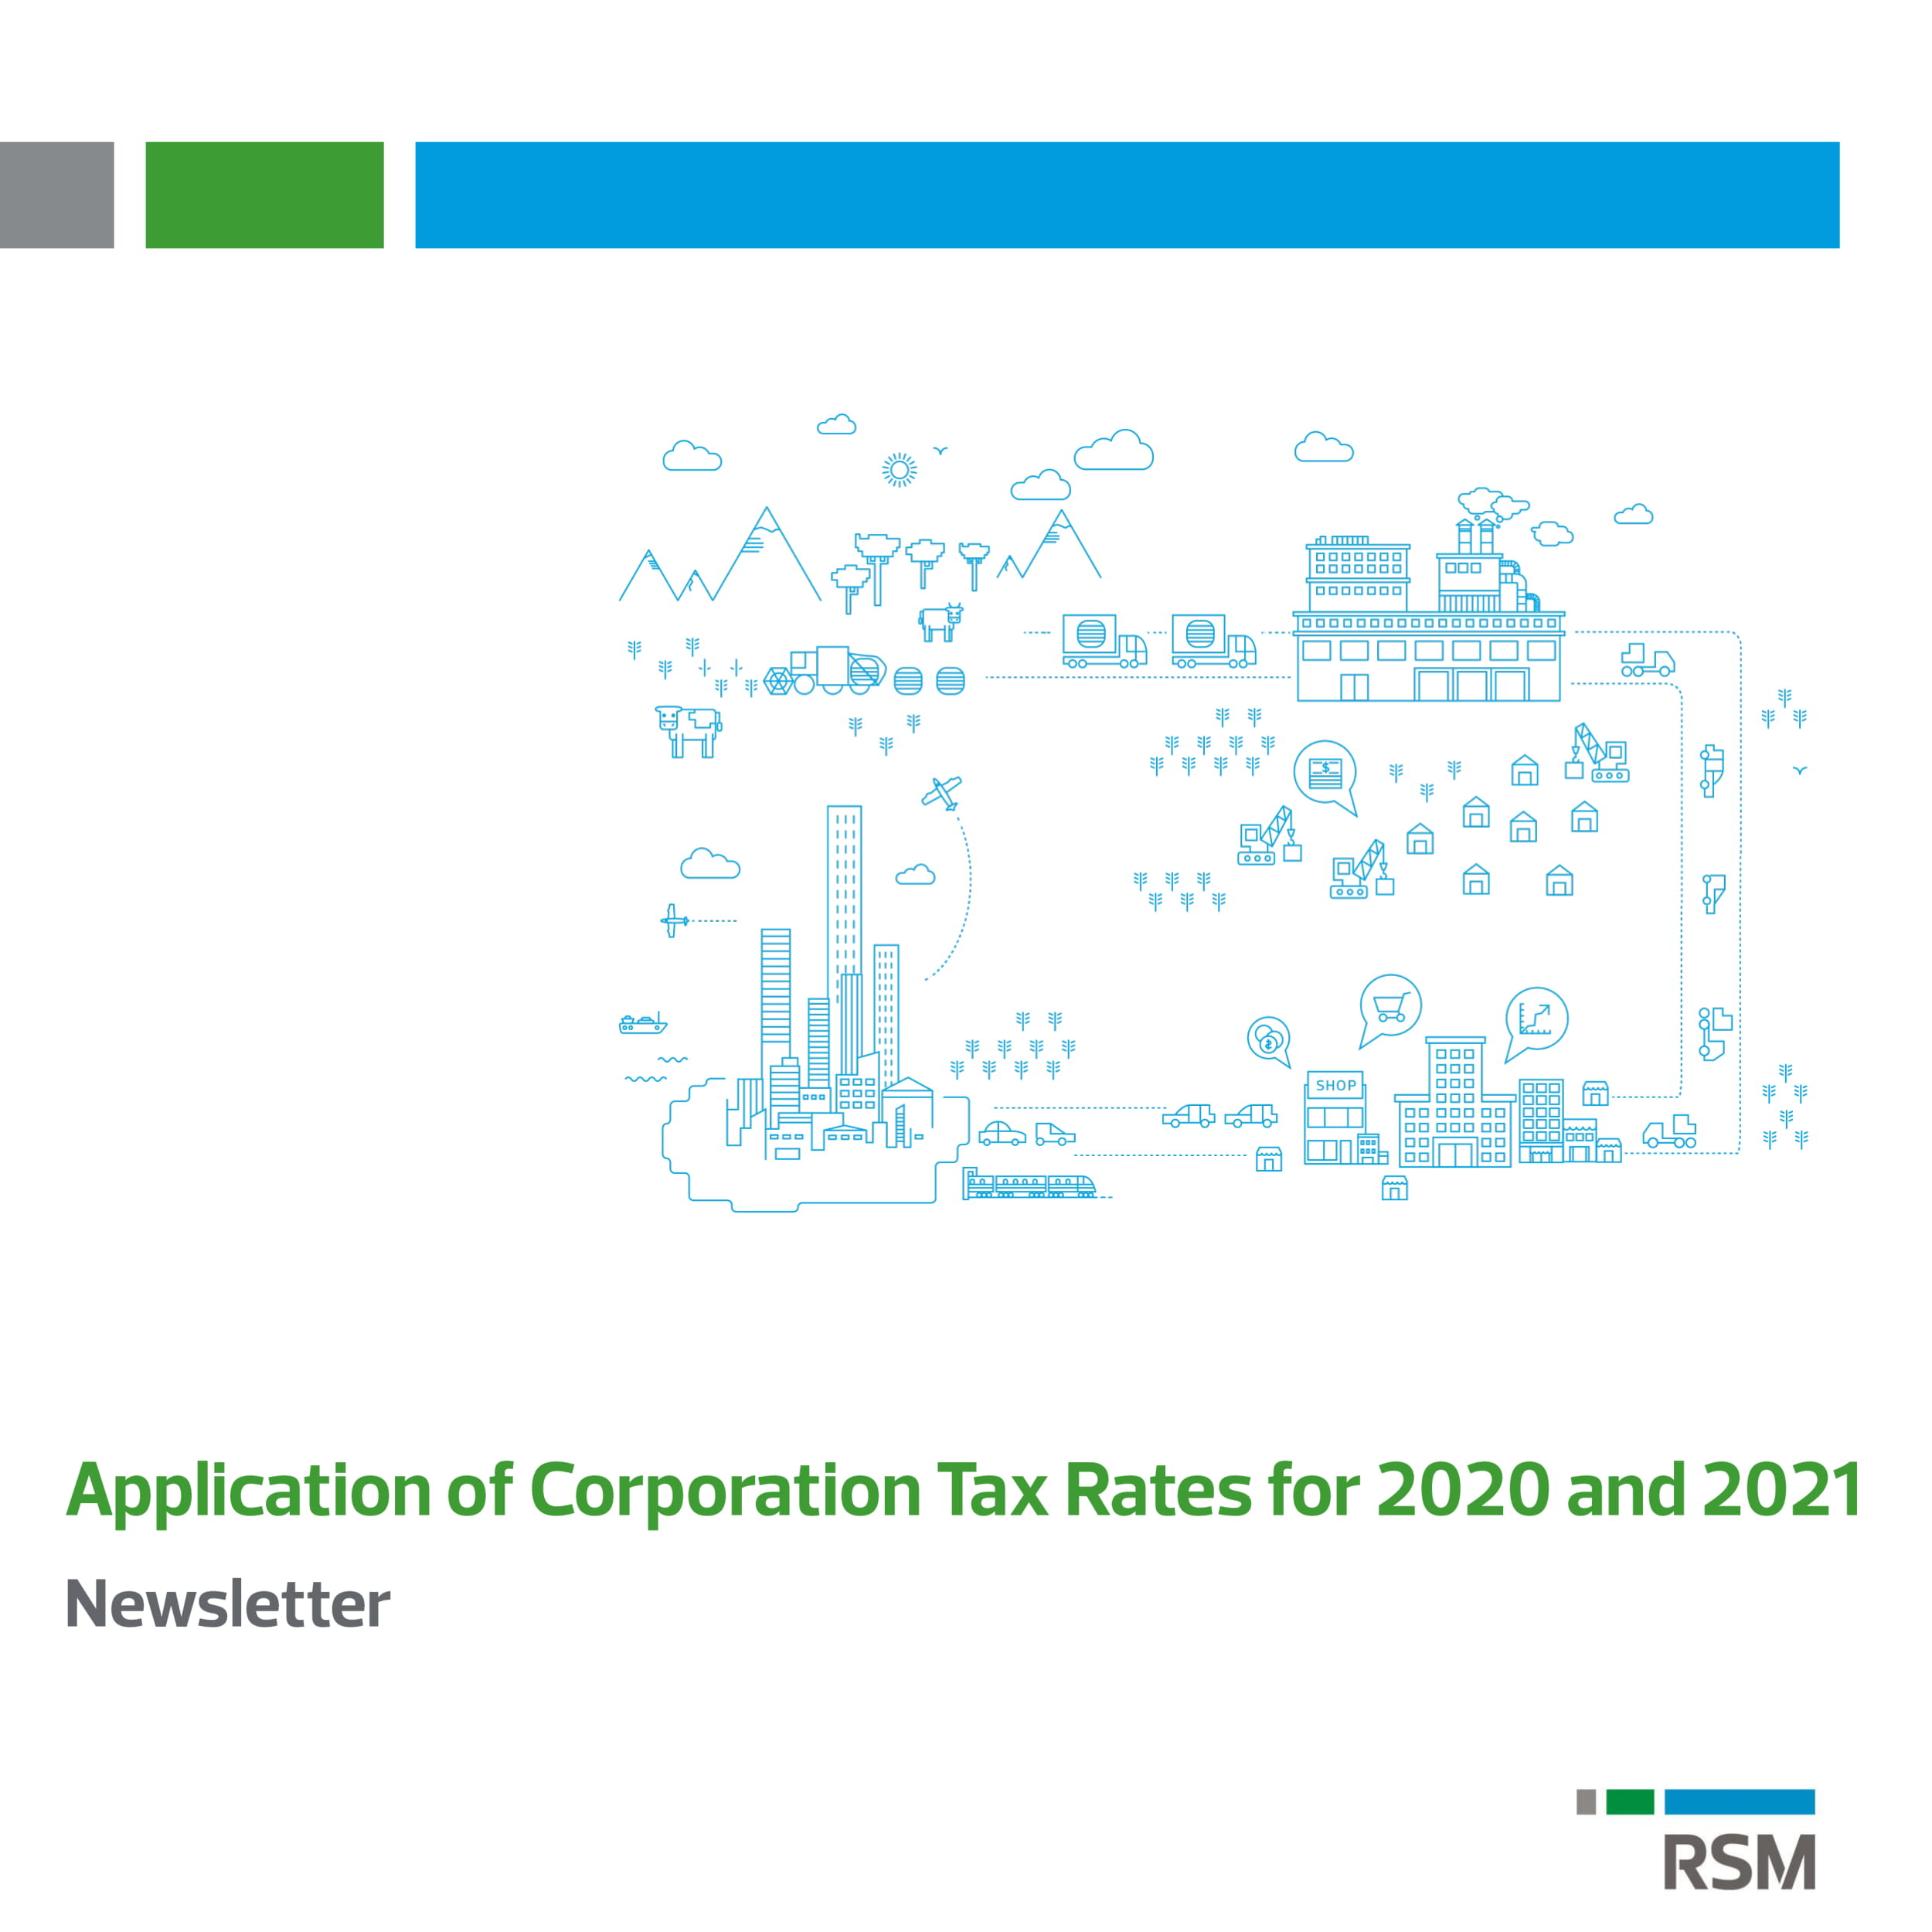 public://media/application_of_corporation_tax_rates_for_2020_and_2021-1.jpg